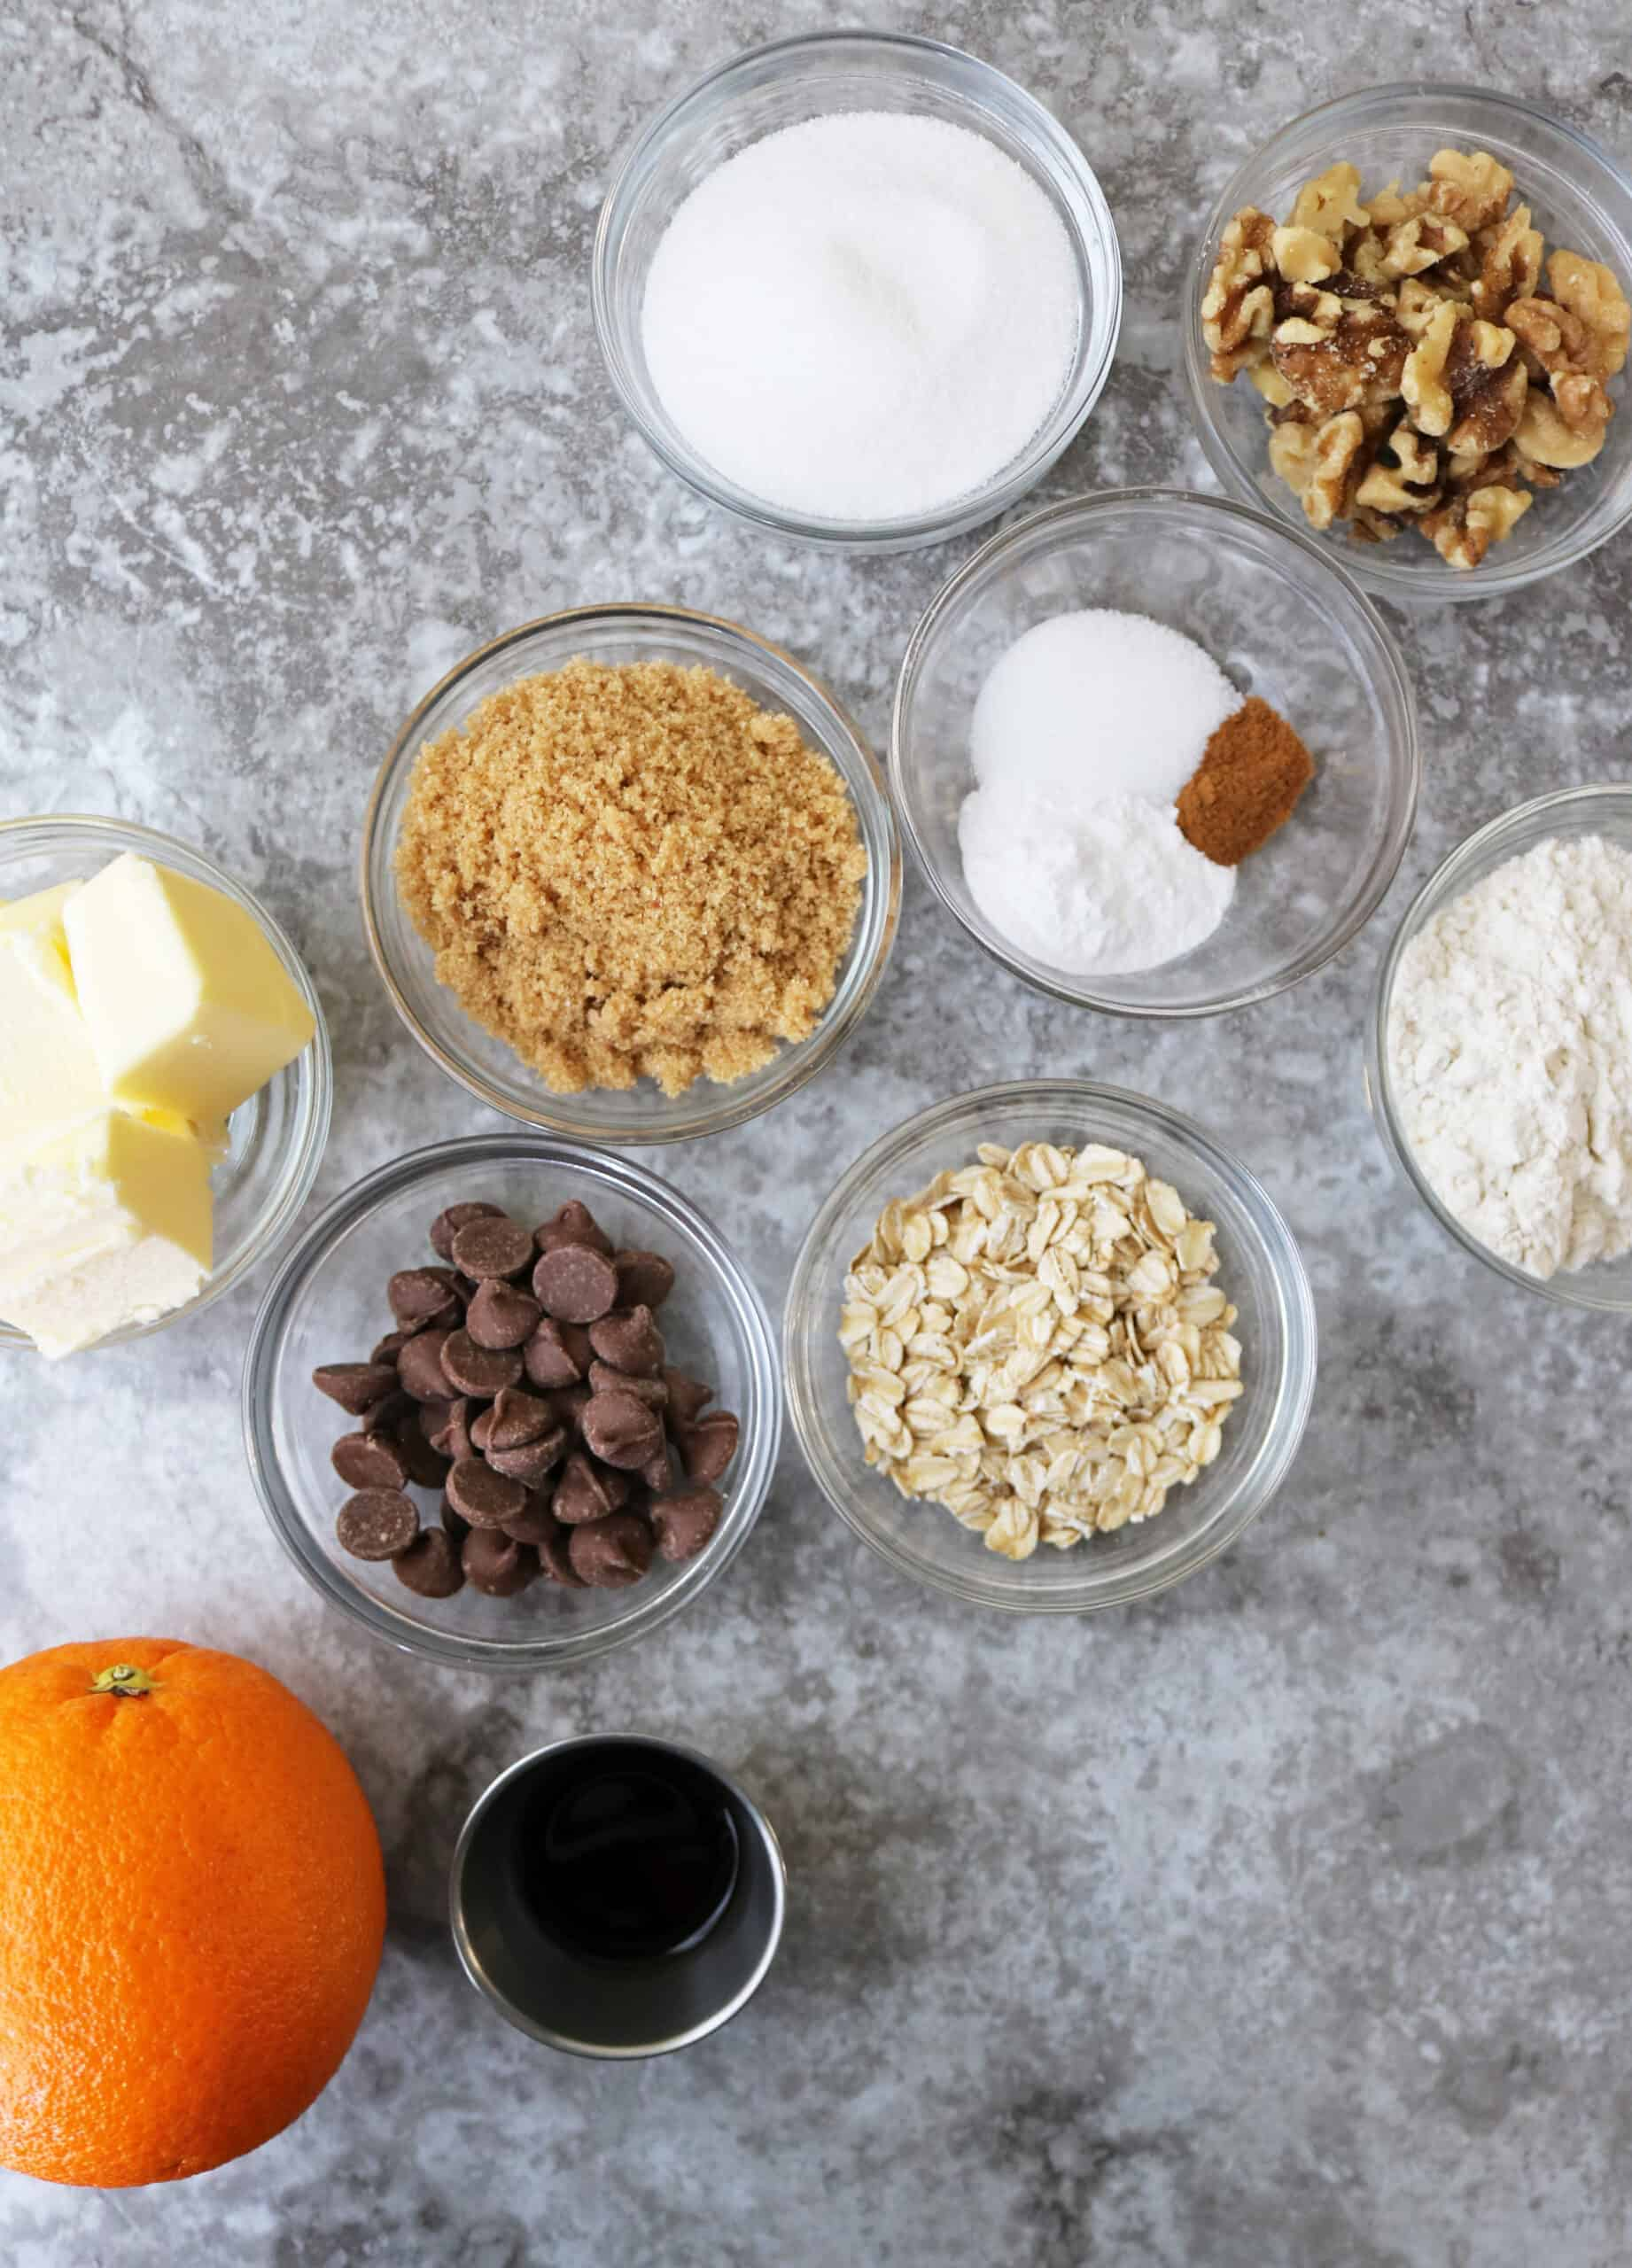 Image of all the ingredients needed to make chocolate chip cookies with orange.